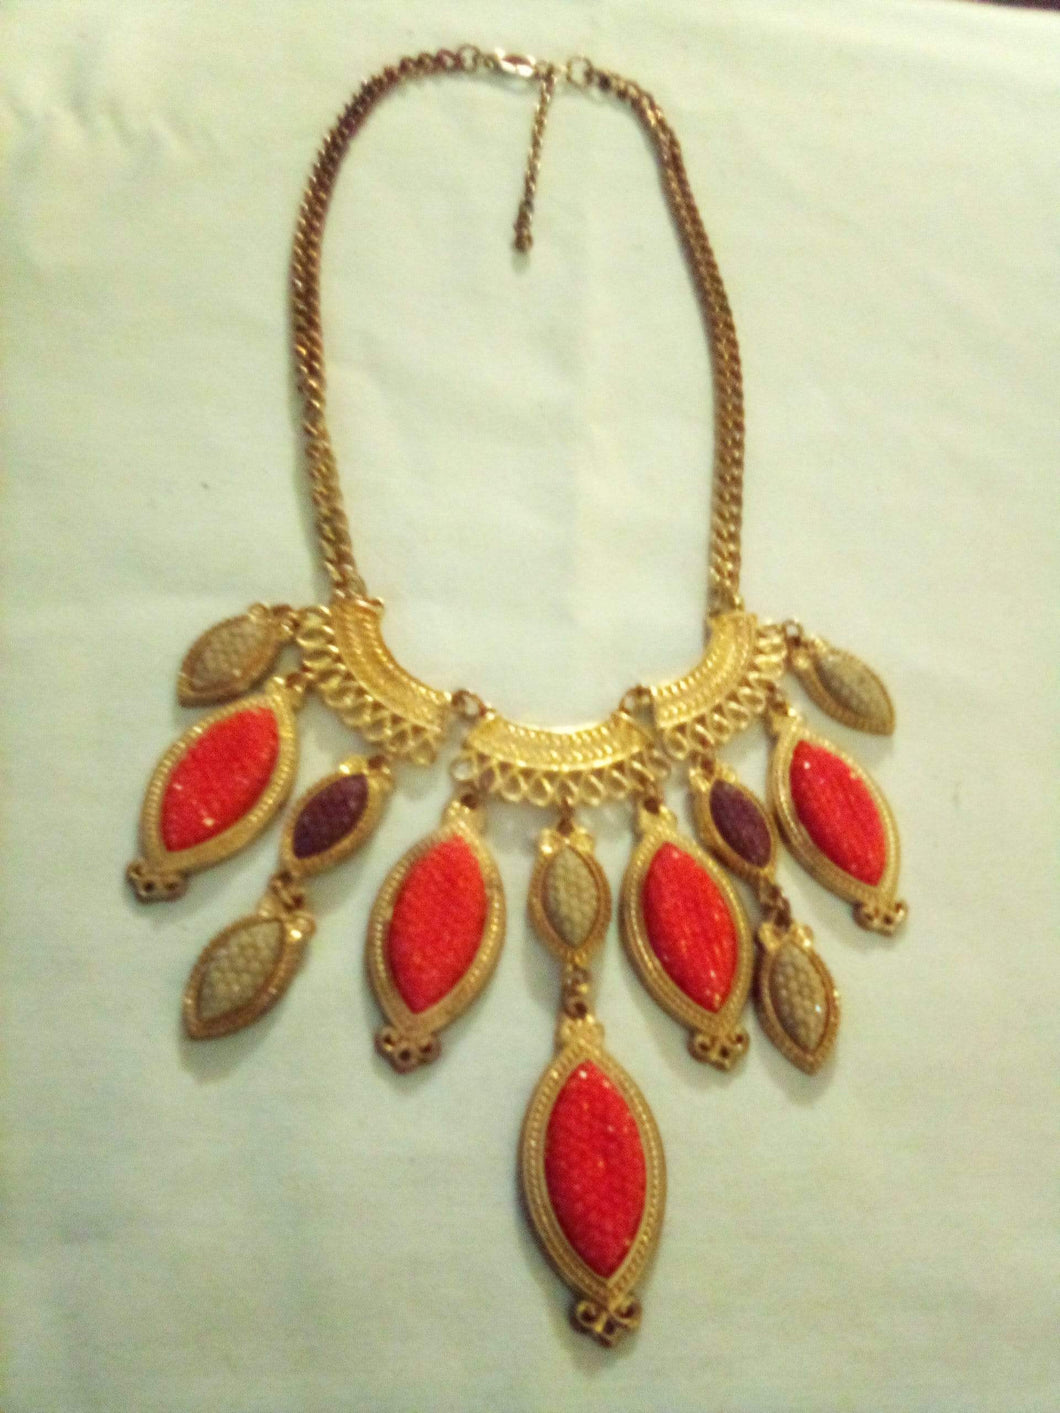 A vintage gold tone necklace - B&P'sringsnthings